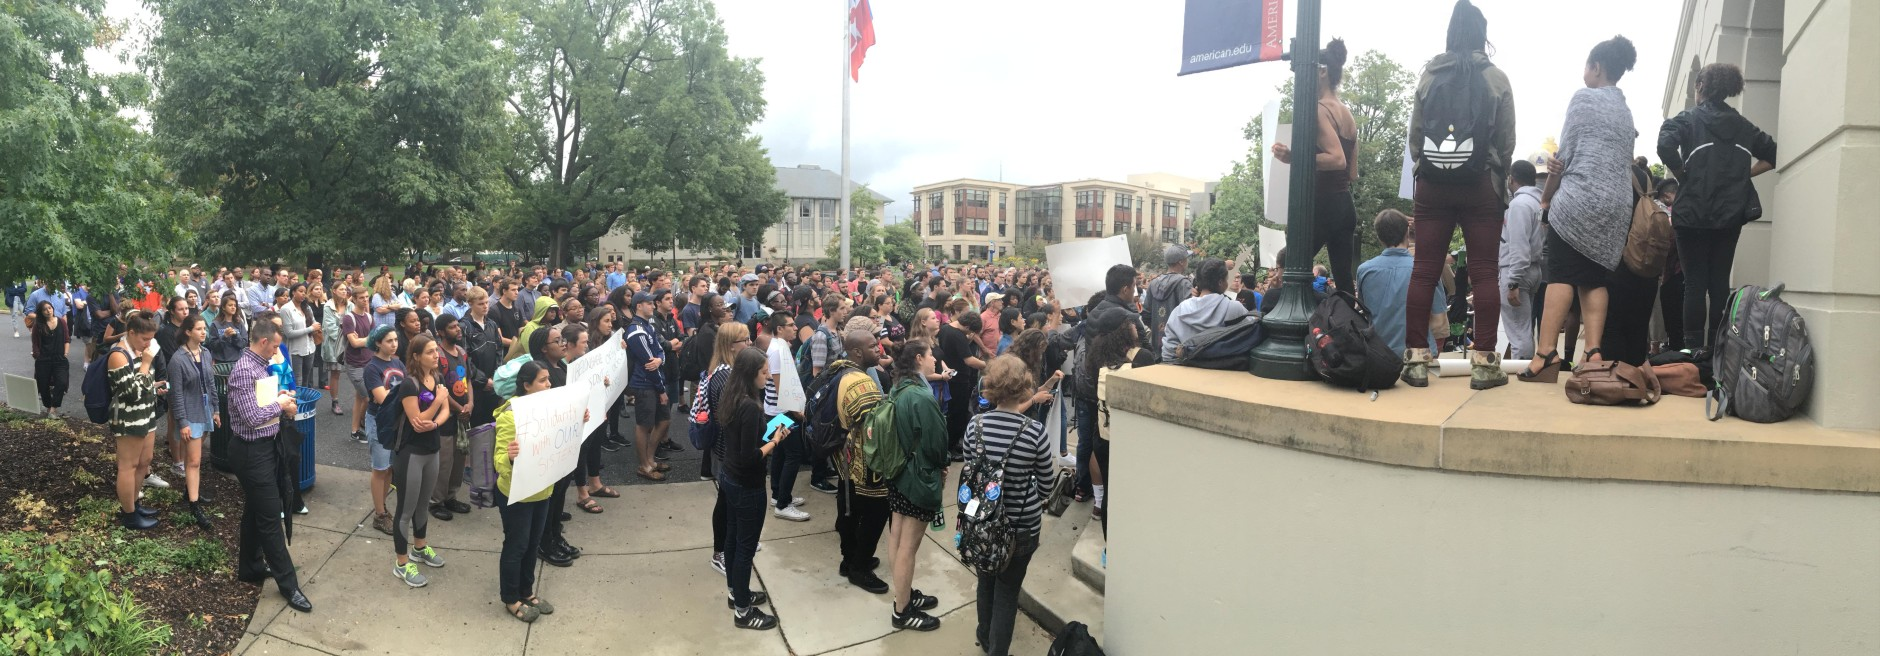 Students at American University attended the protest Monday. (WTOP/Max Smith)